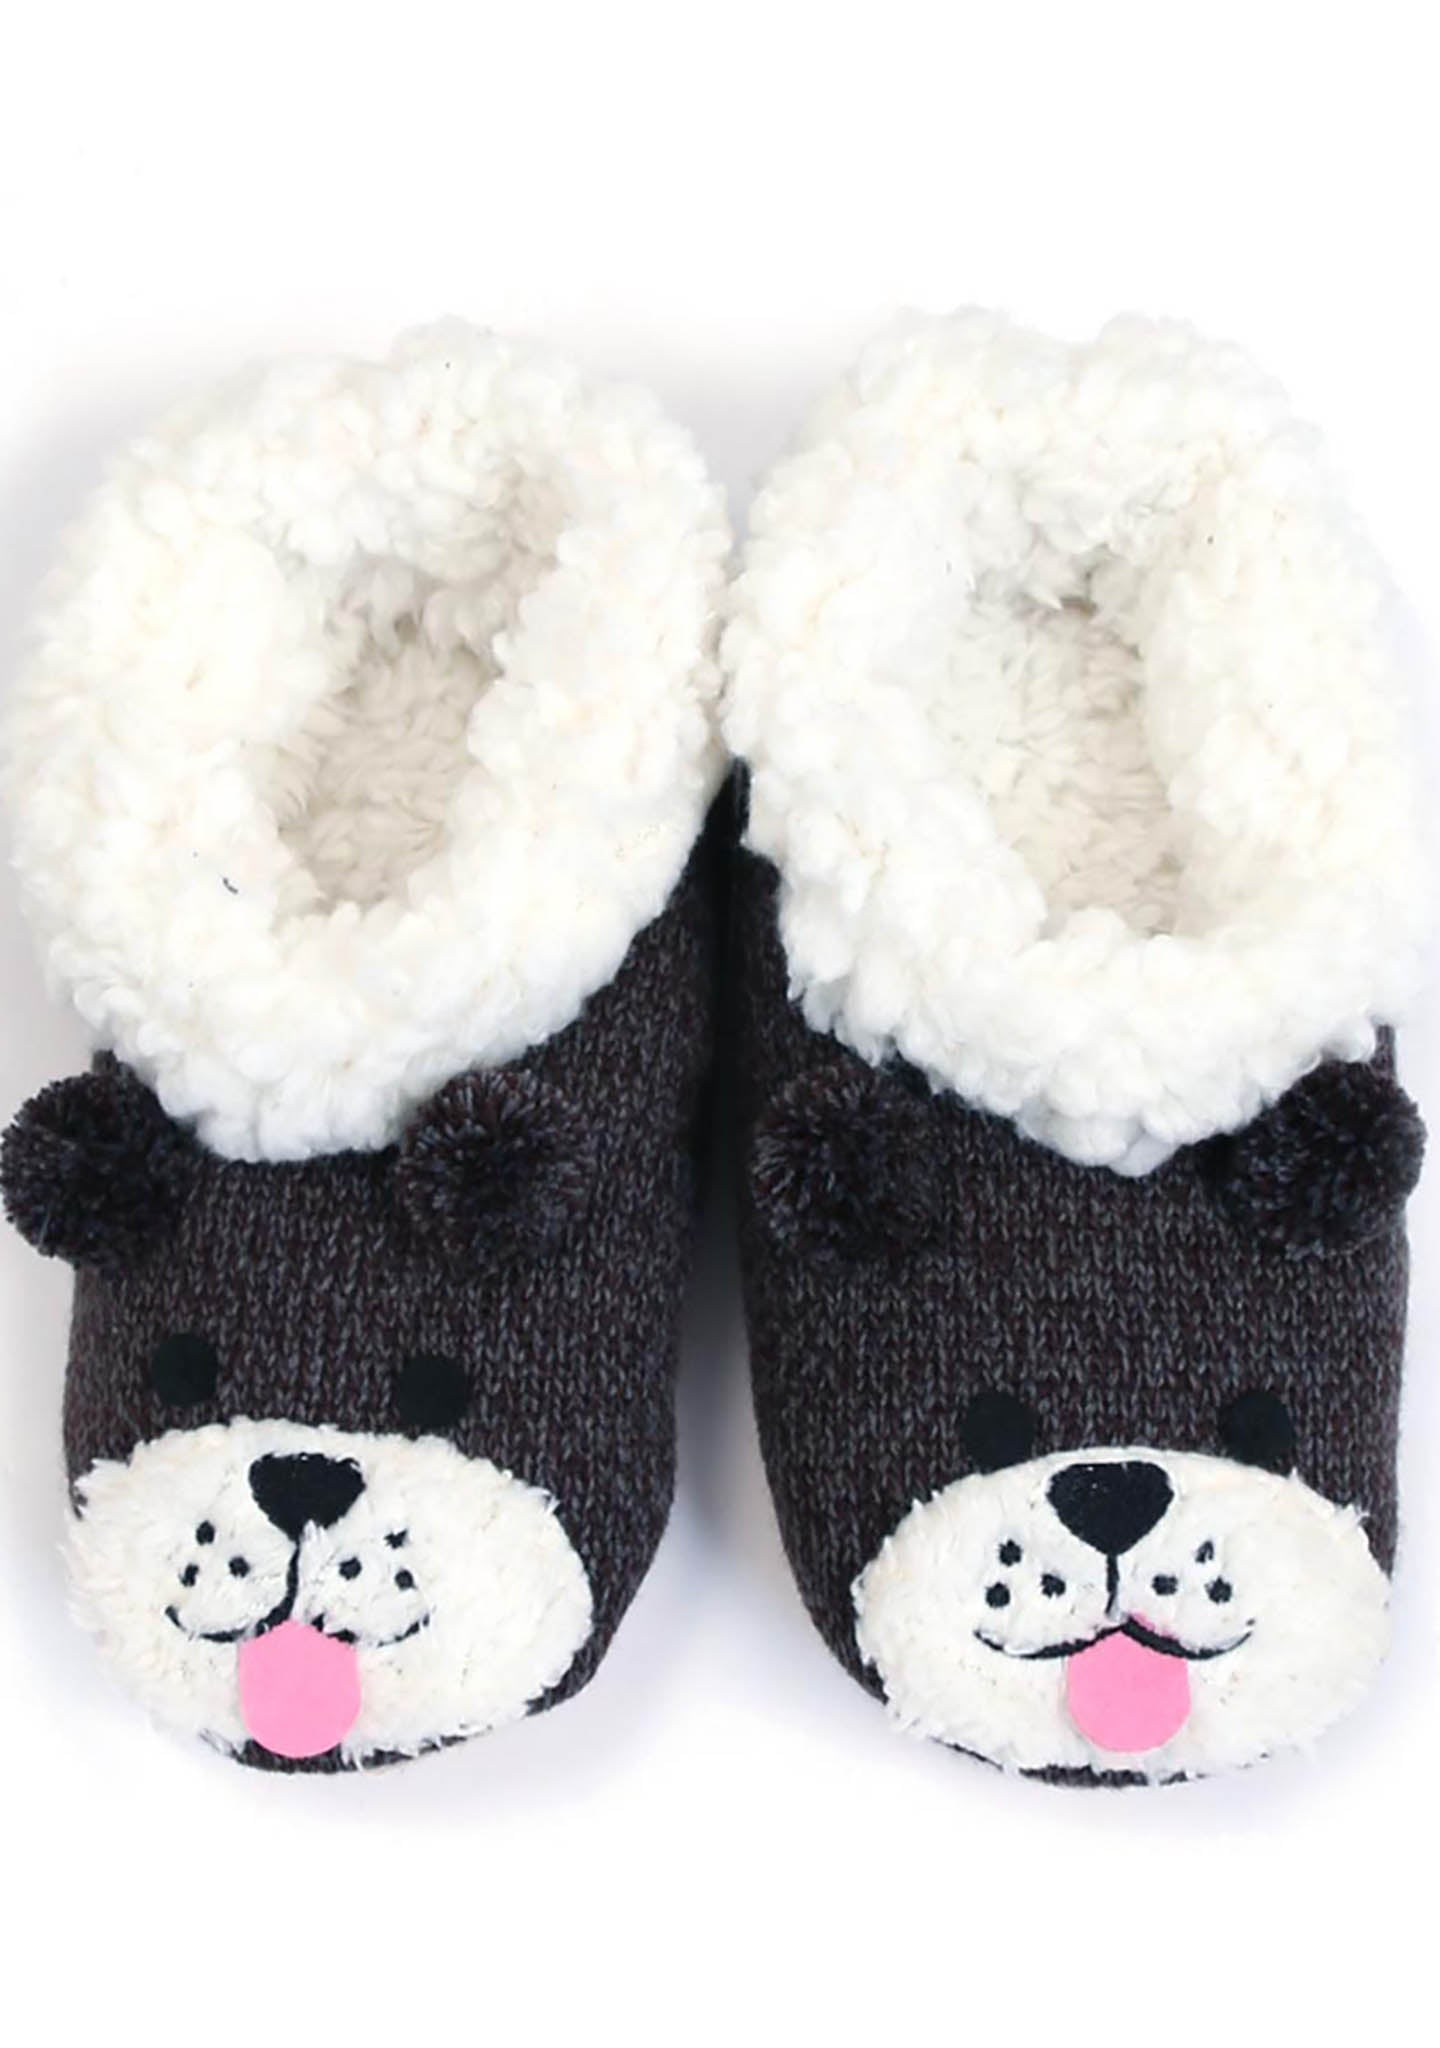 7 LUXE Puppy Dog Face Slippers